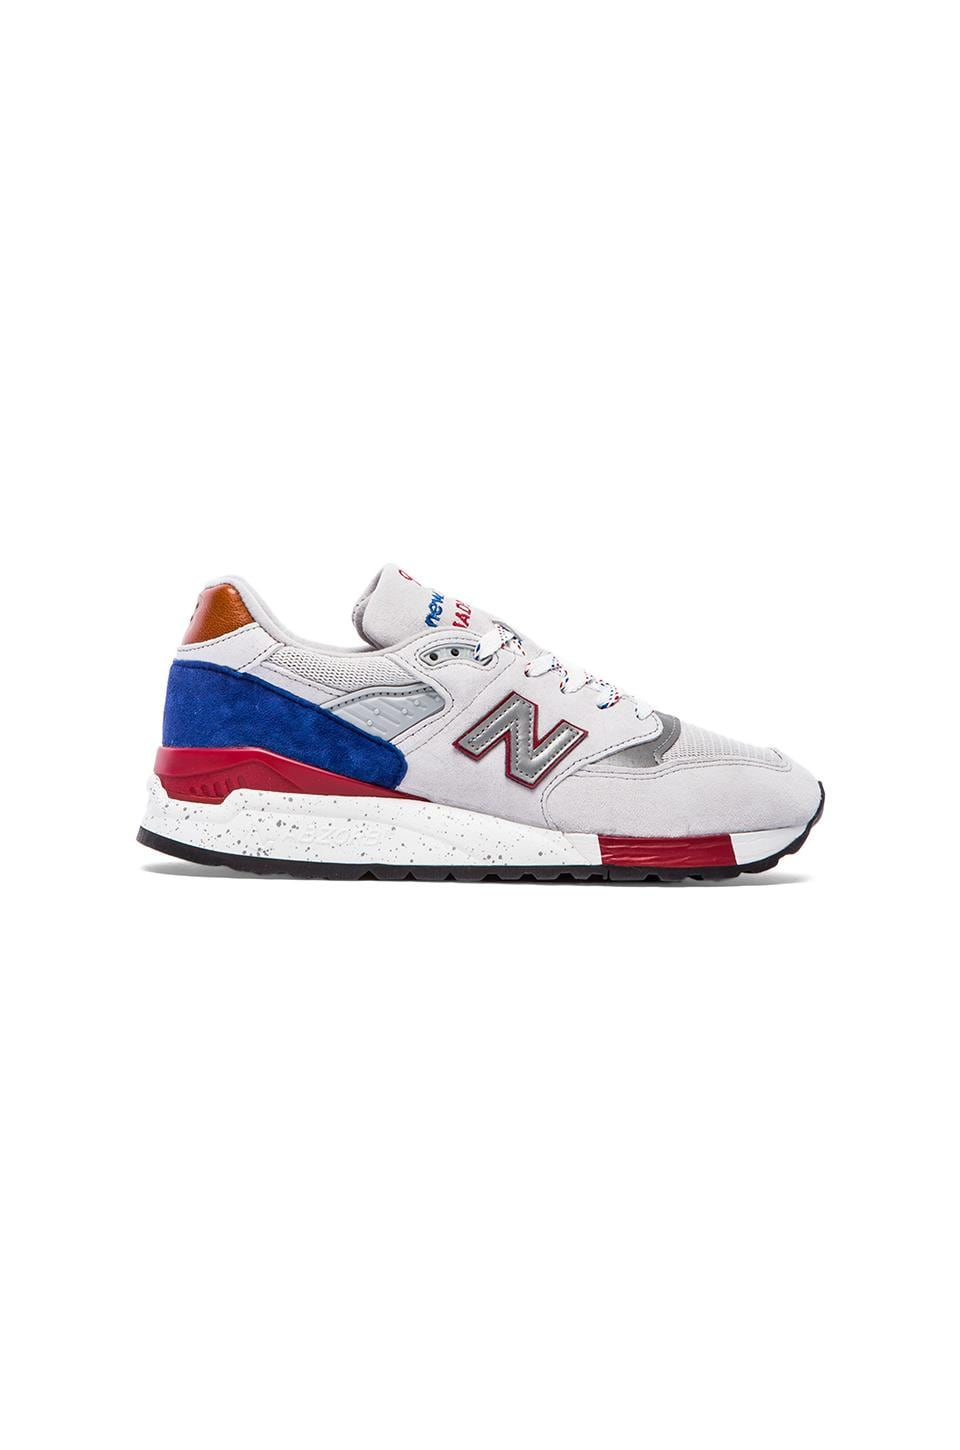 New Balance Made in USA M998 in Grey & Blue & Red